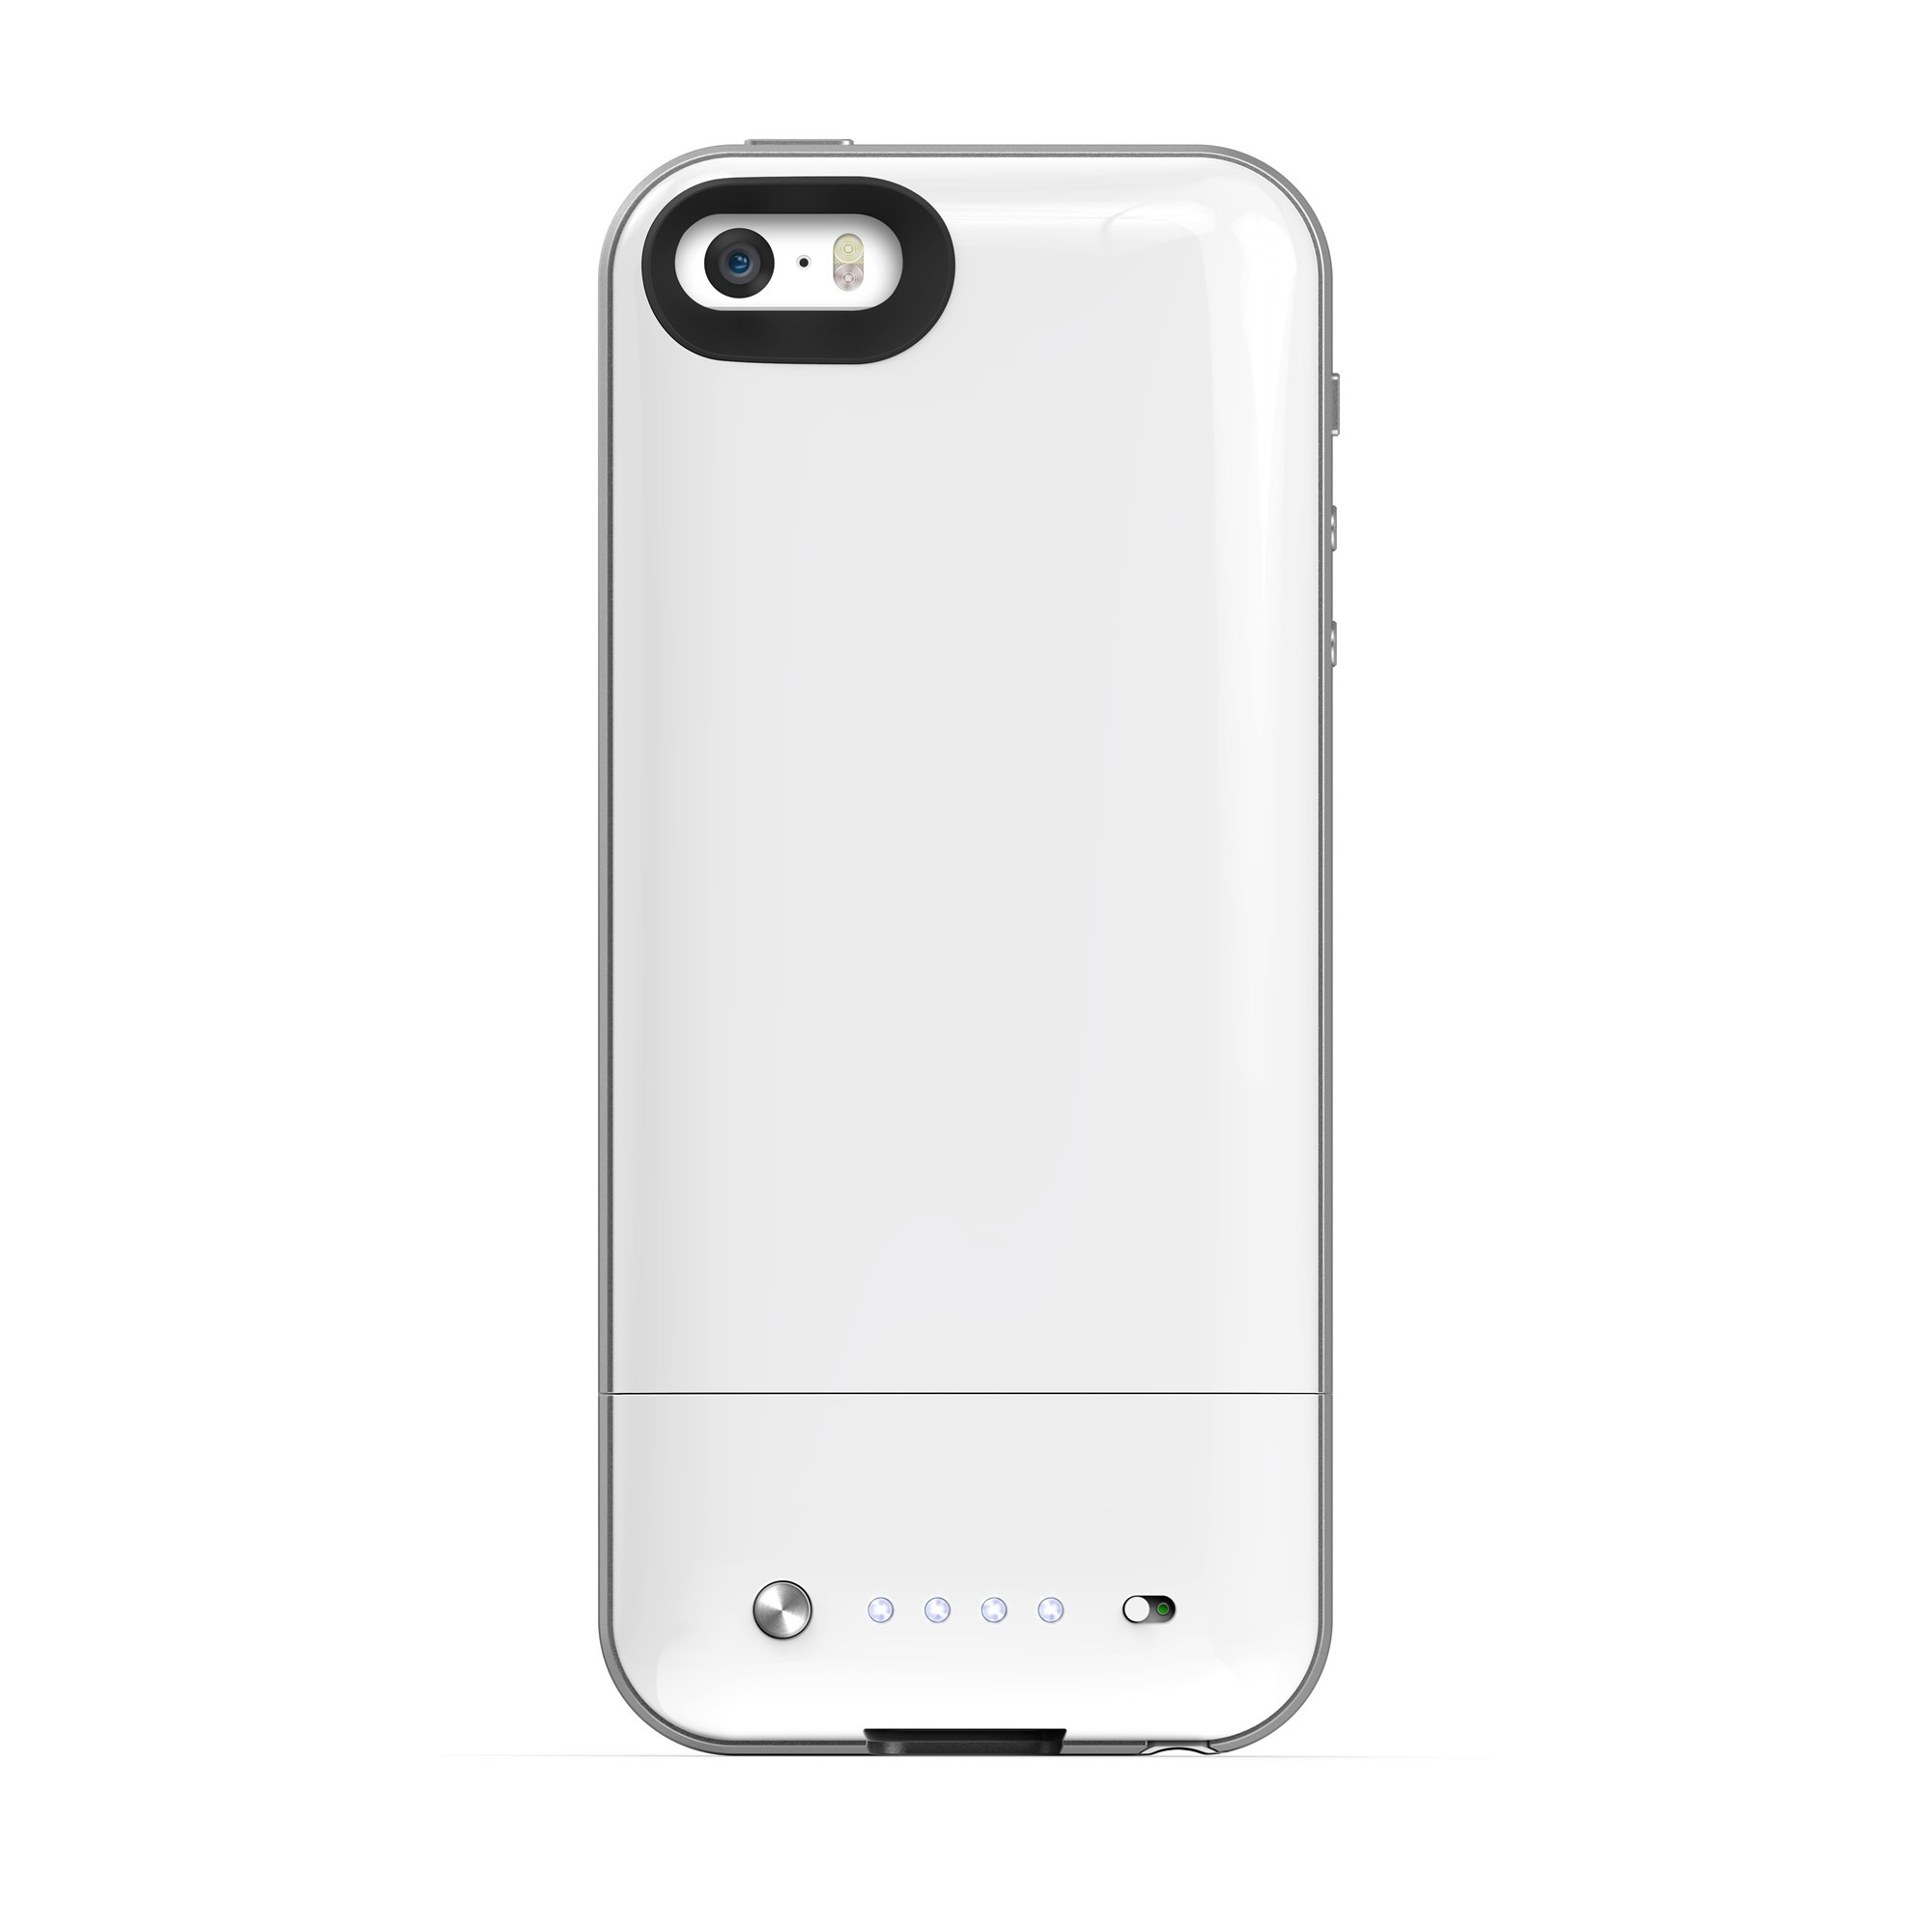 Portable Iphone Storage : Mophie spacepack battery case w built in gb storage for